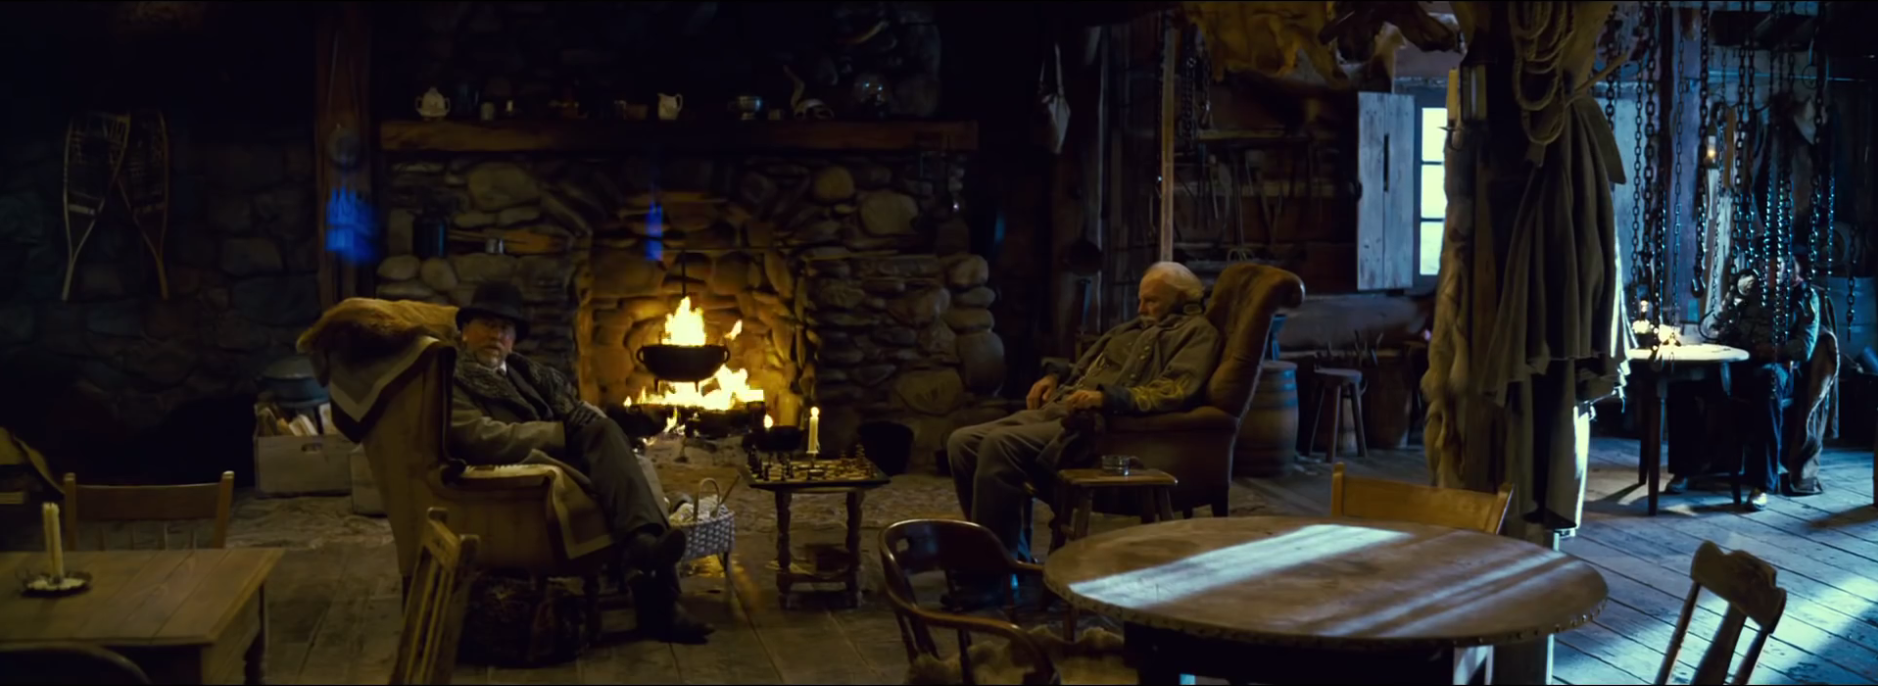 The Hateful Eight - 70mm-film screenshot